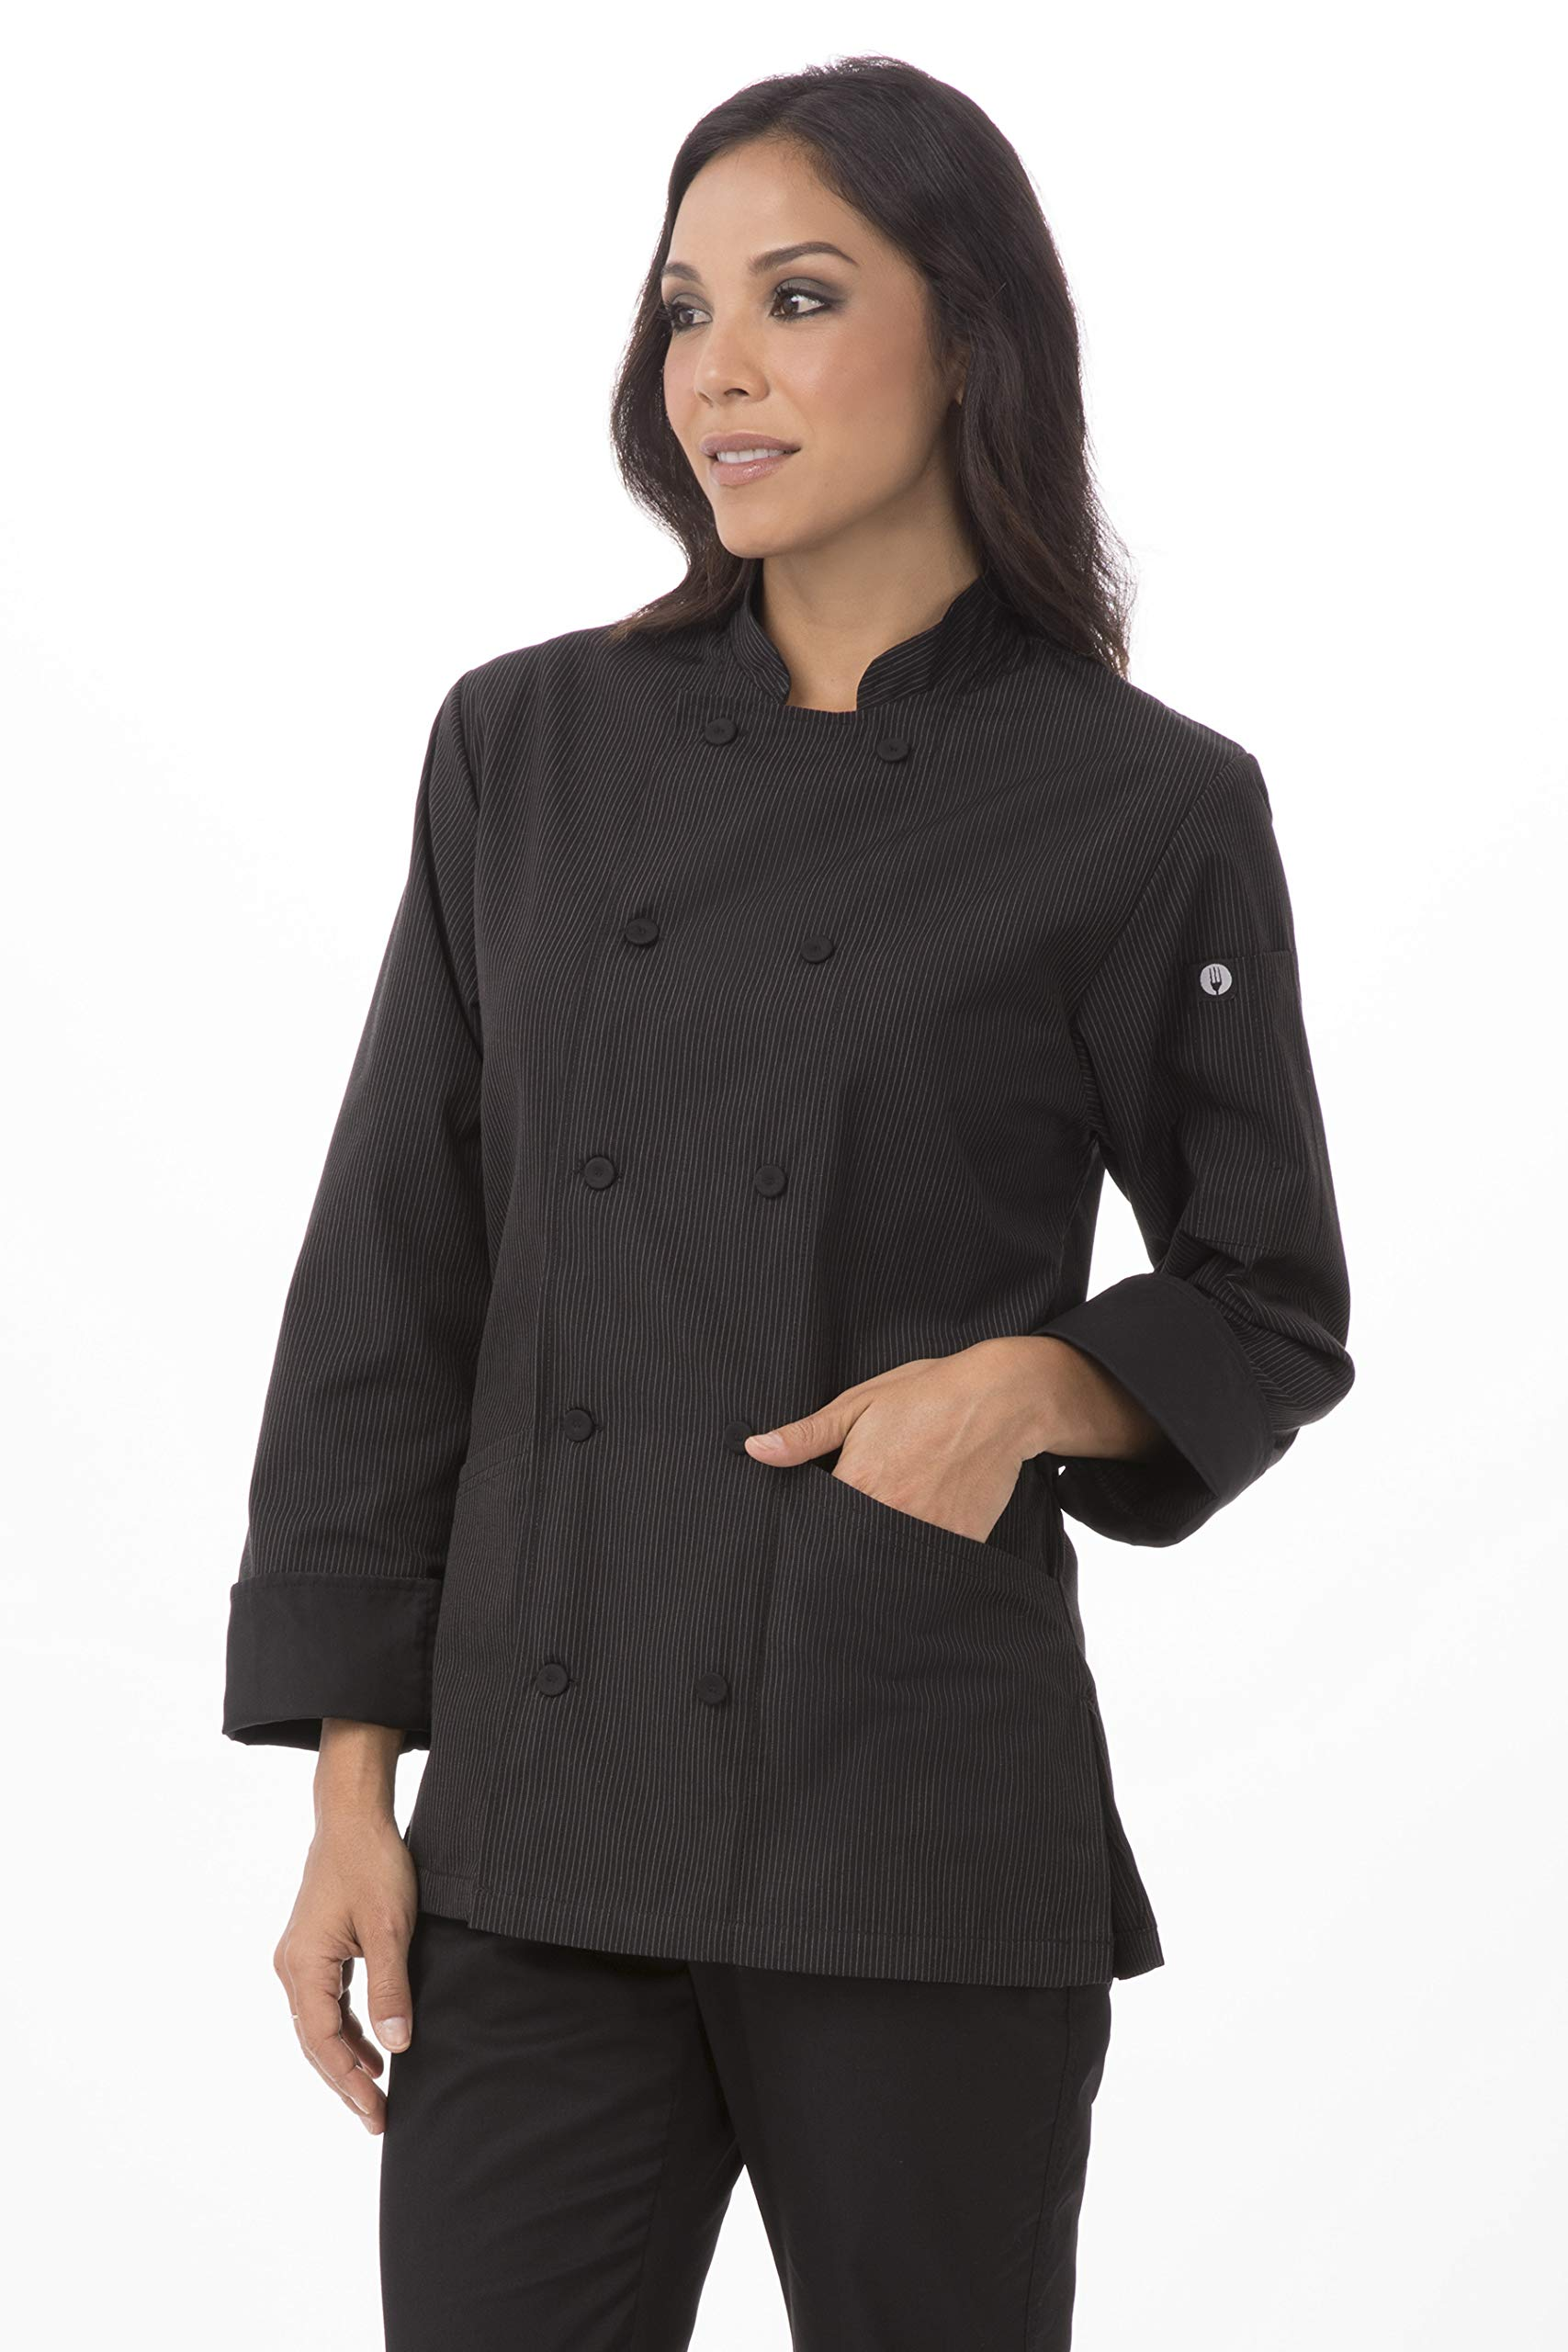 Chef Works Women's Carlisle Executive Chef Coat, Pinstripe, Medium by Chef Works